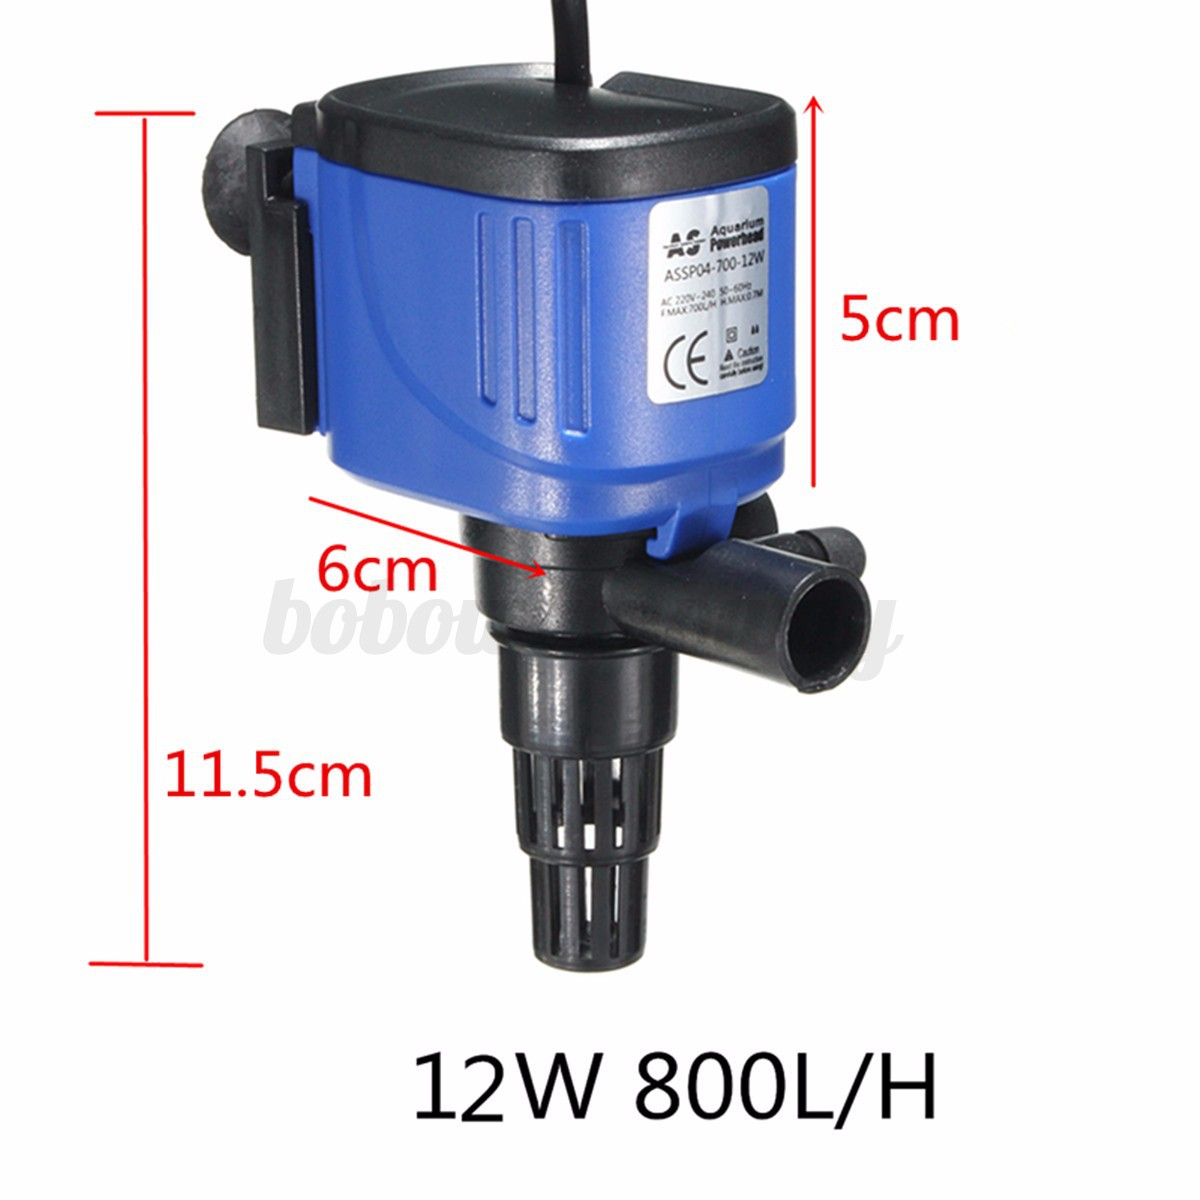 3 in 1 aquarium fish tank powerhead wave maker for Fish tank wave maker